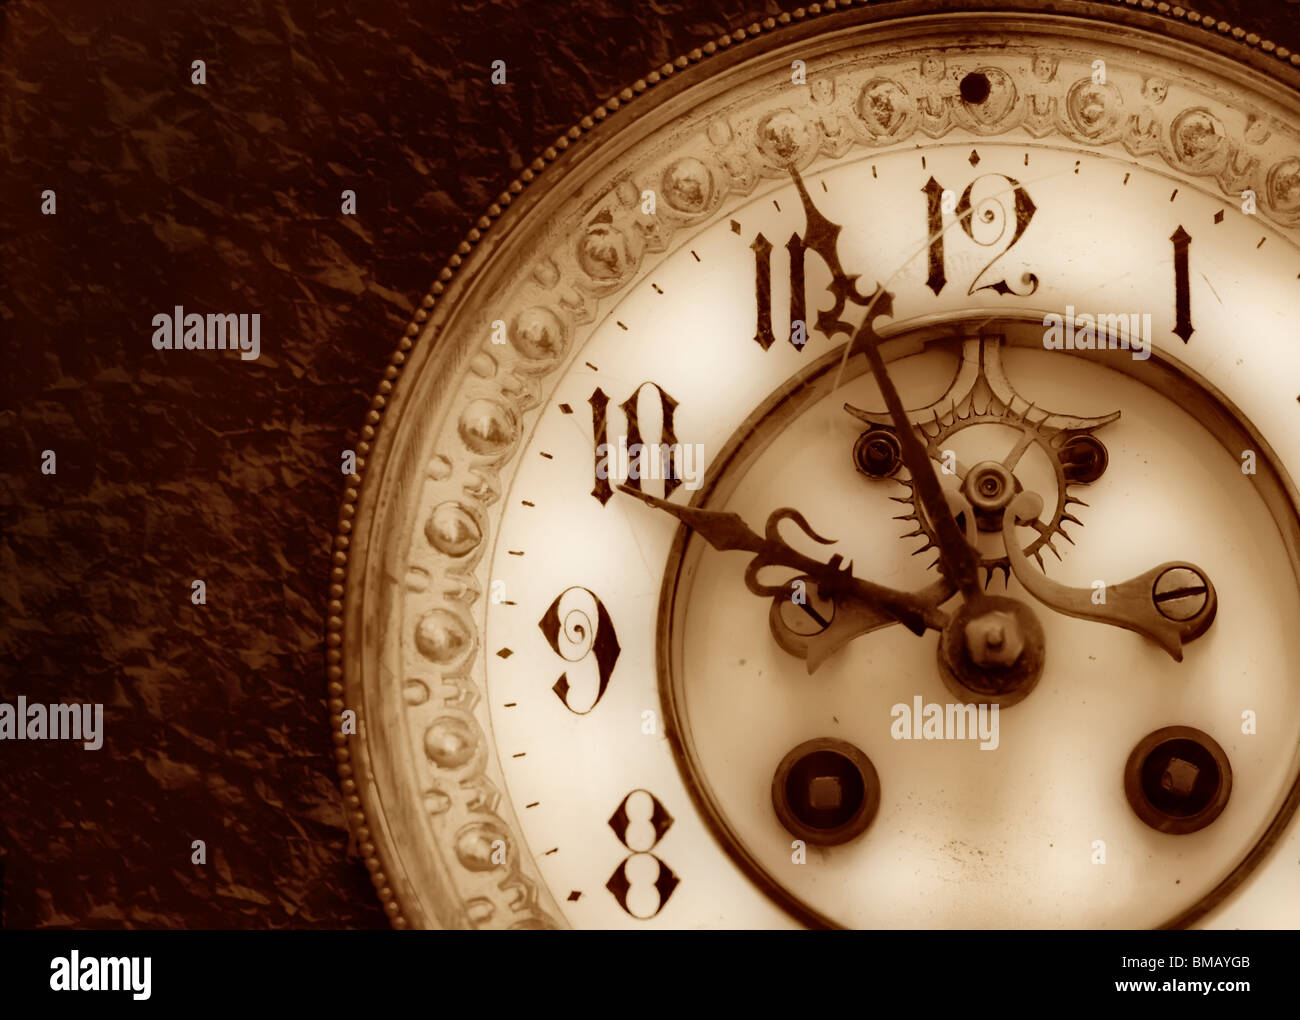 Old clock on the relief background - Stock Image